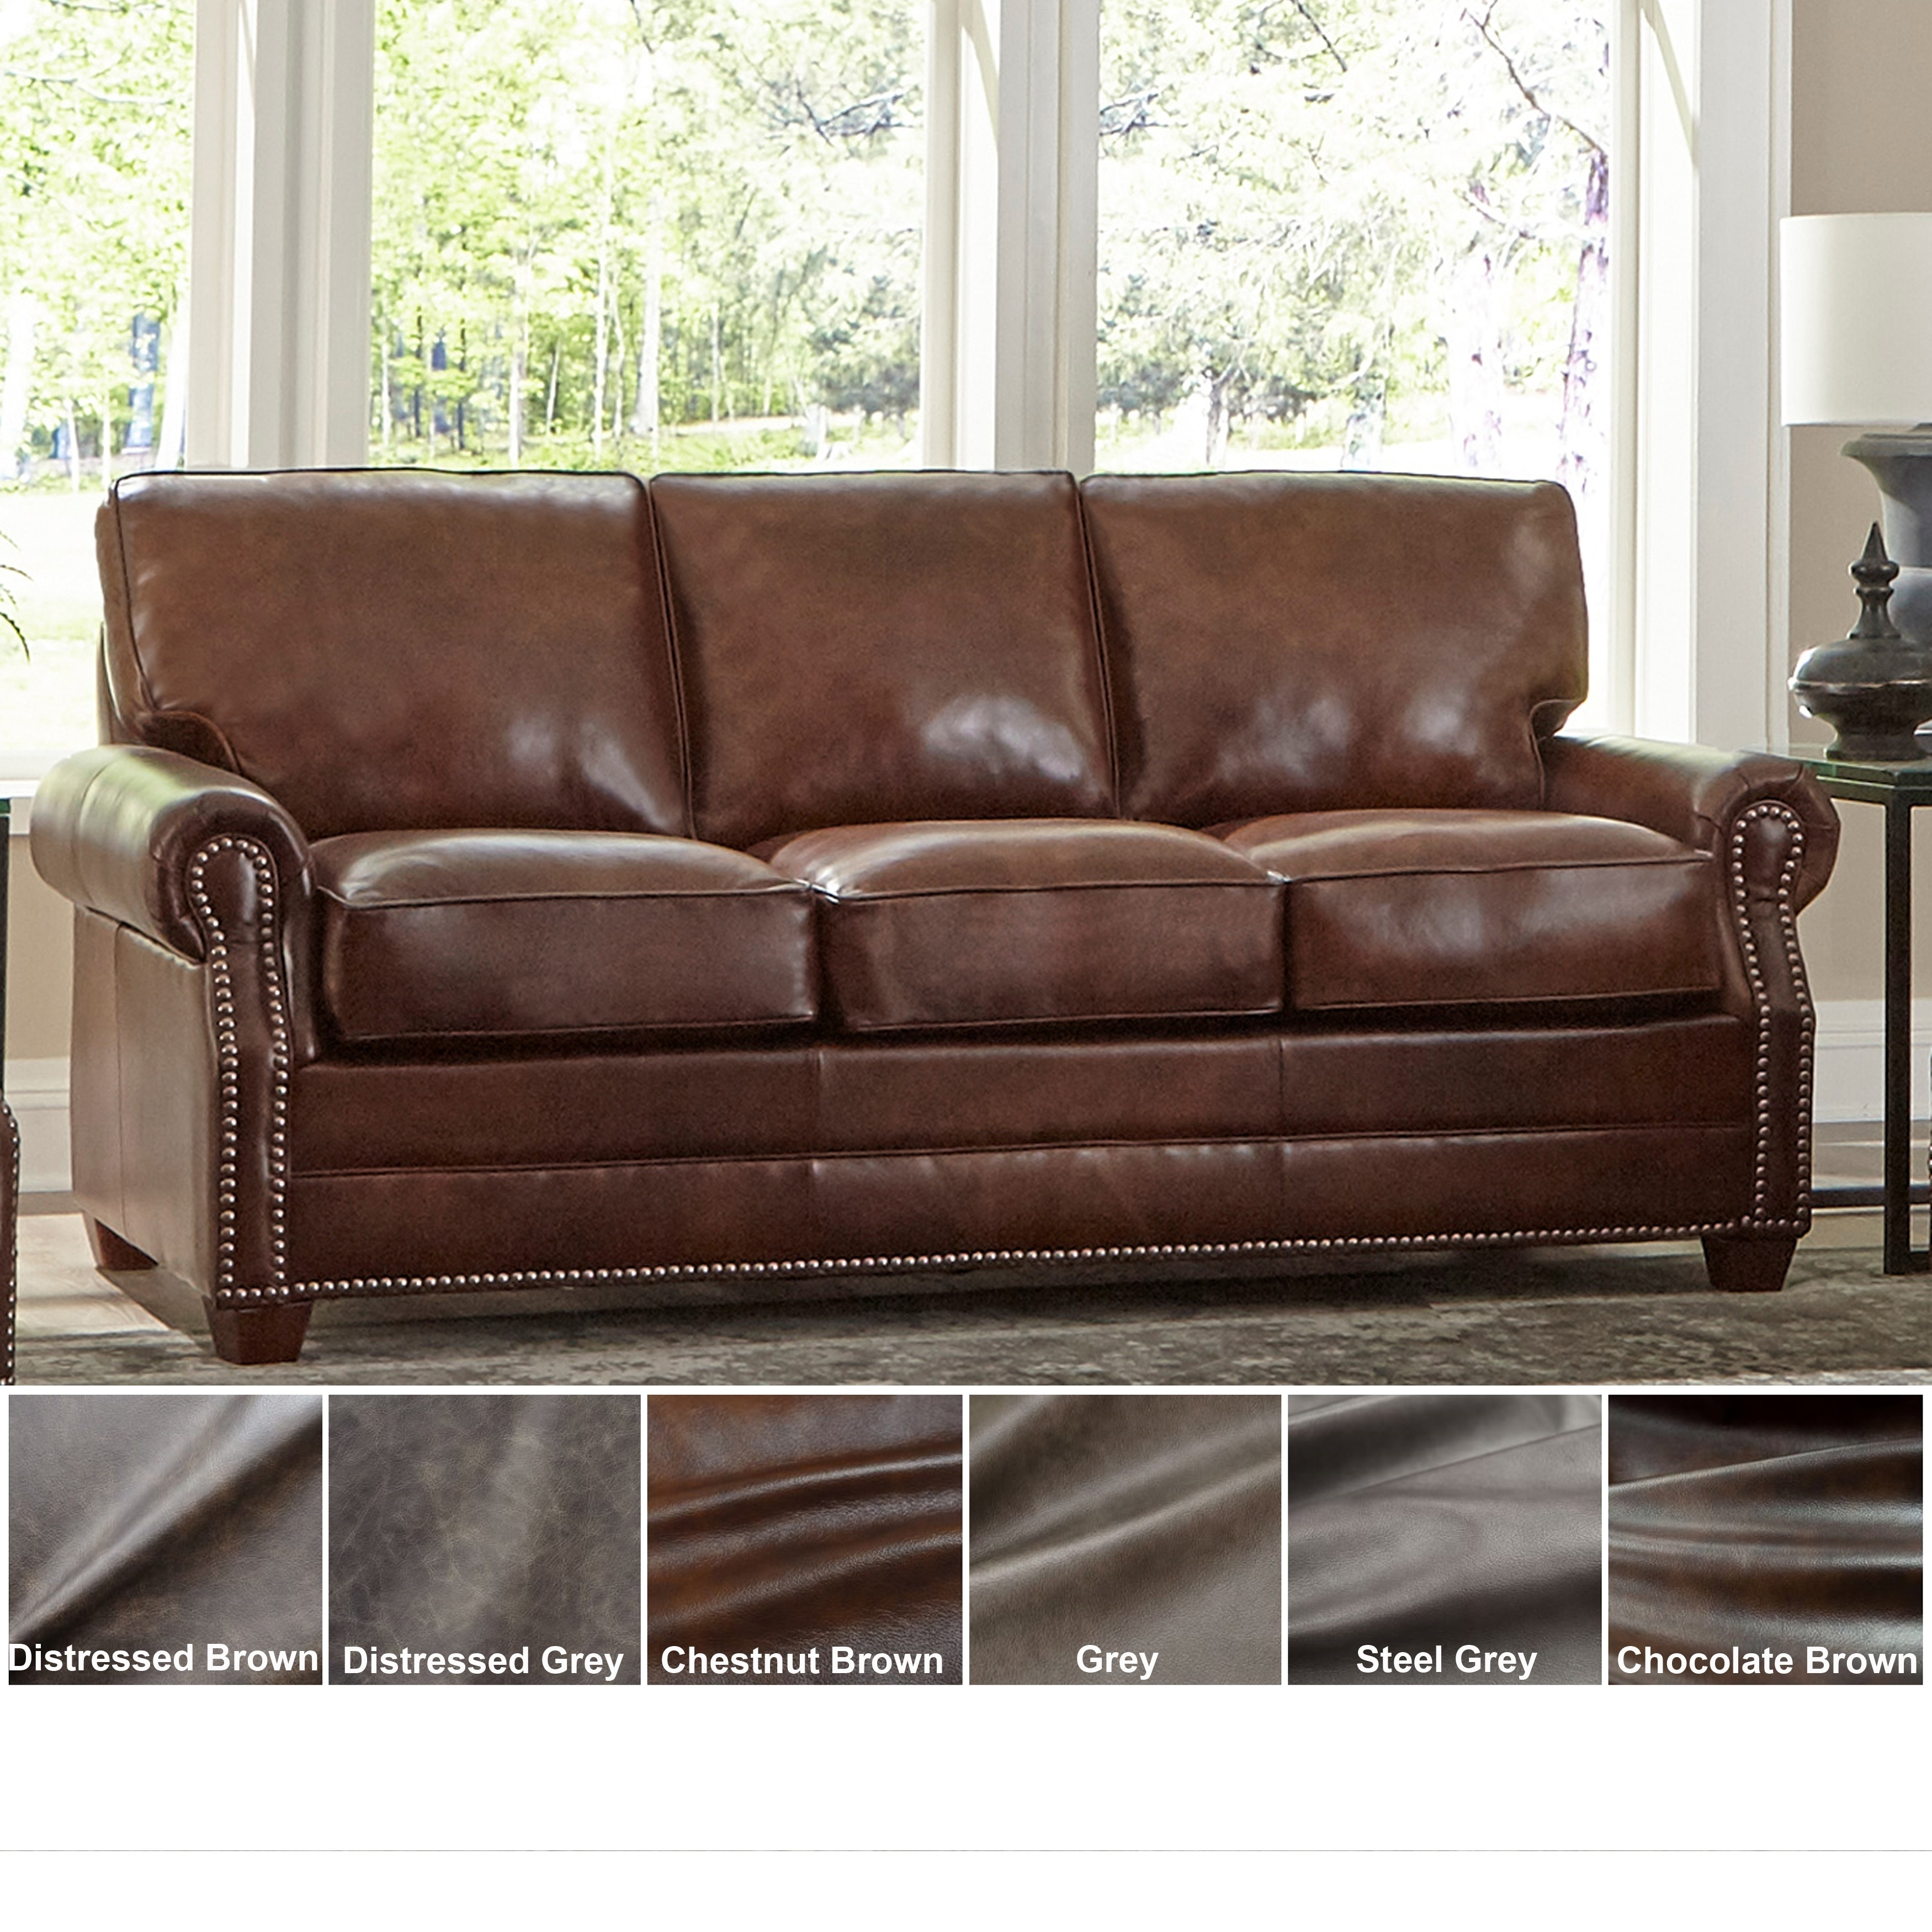 Usa Revo Top Grain Leather Sofa Bed